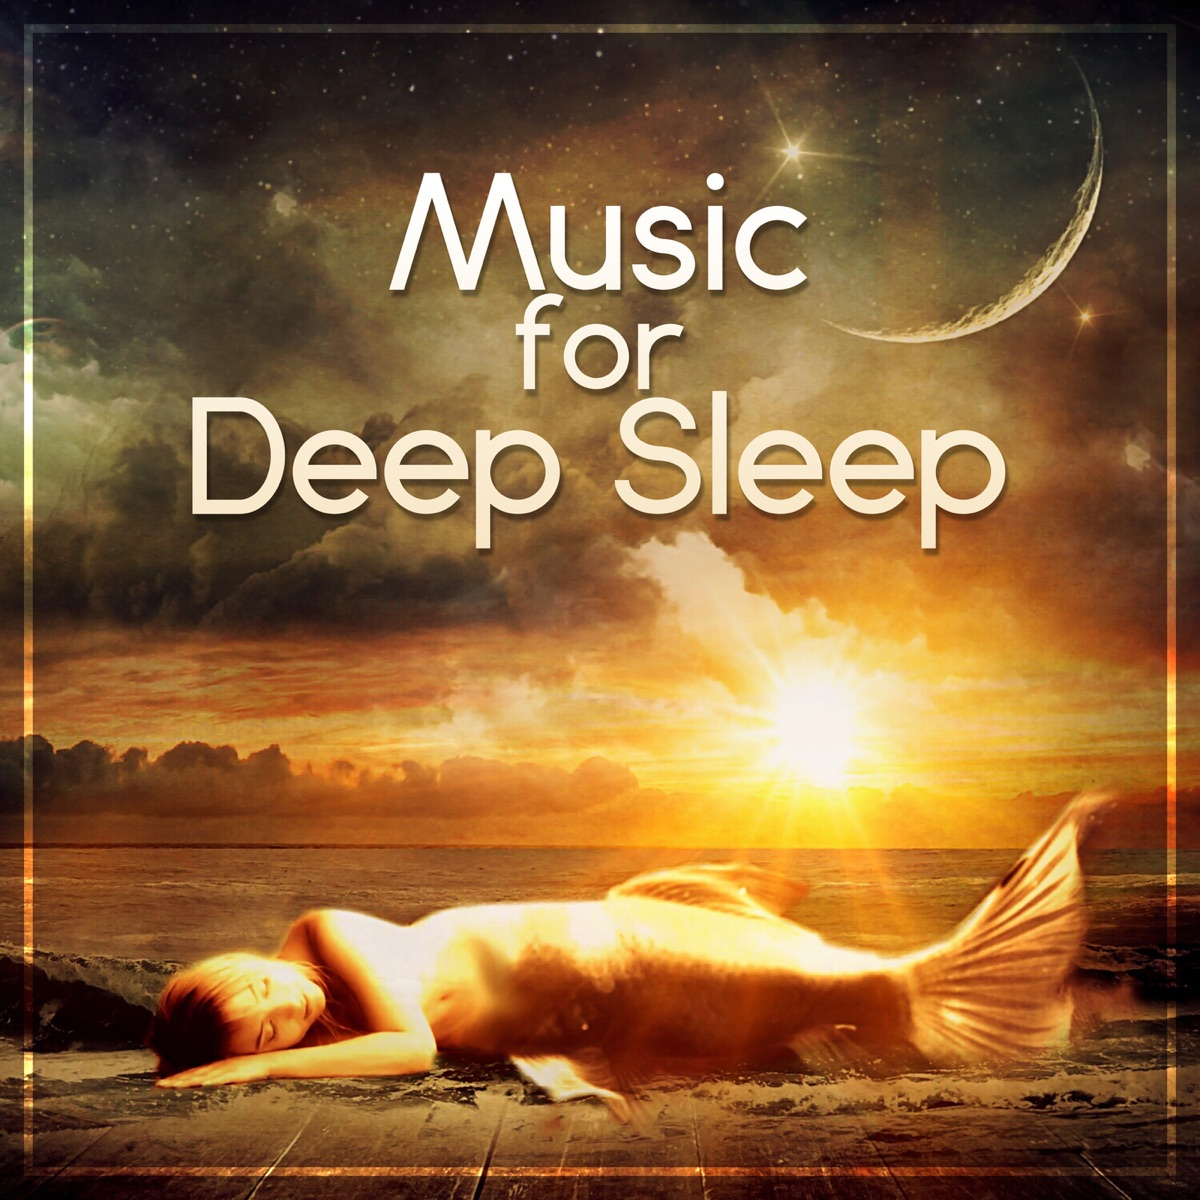 Music for Deep SleepTreatment of Insomnia Sleep Disorder Delta Waves Healing Sounds for Trouble Sleeping Dreaming  Sleep Deeply Healing Meditation Zone  Pure Spa Massage Music  Serenity Music Relaxation CD cover